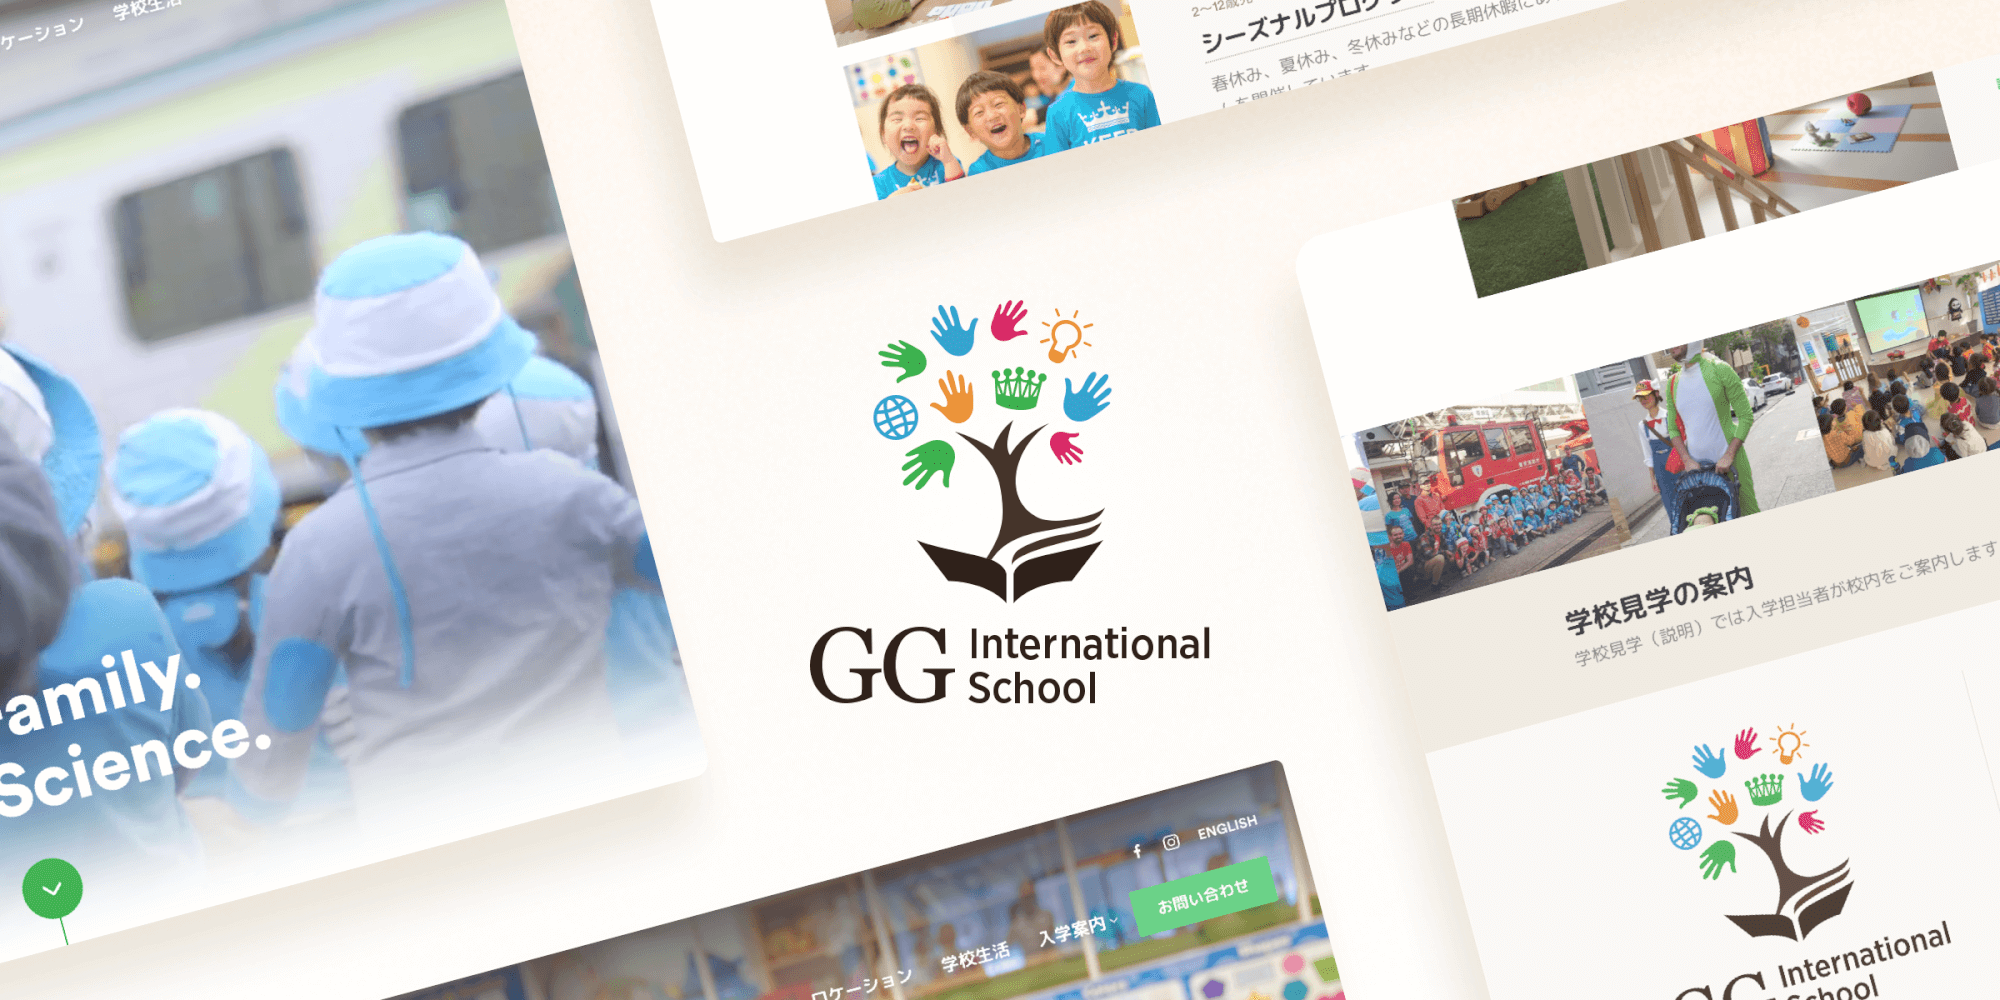 GG International School